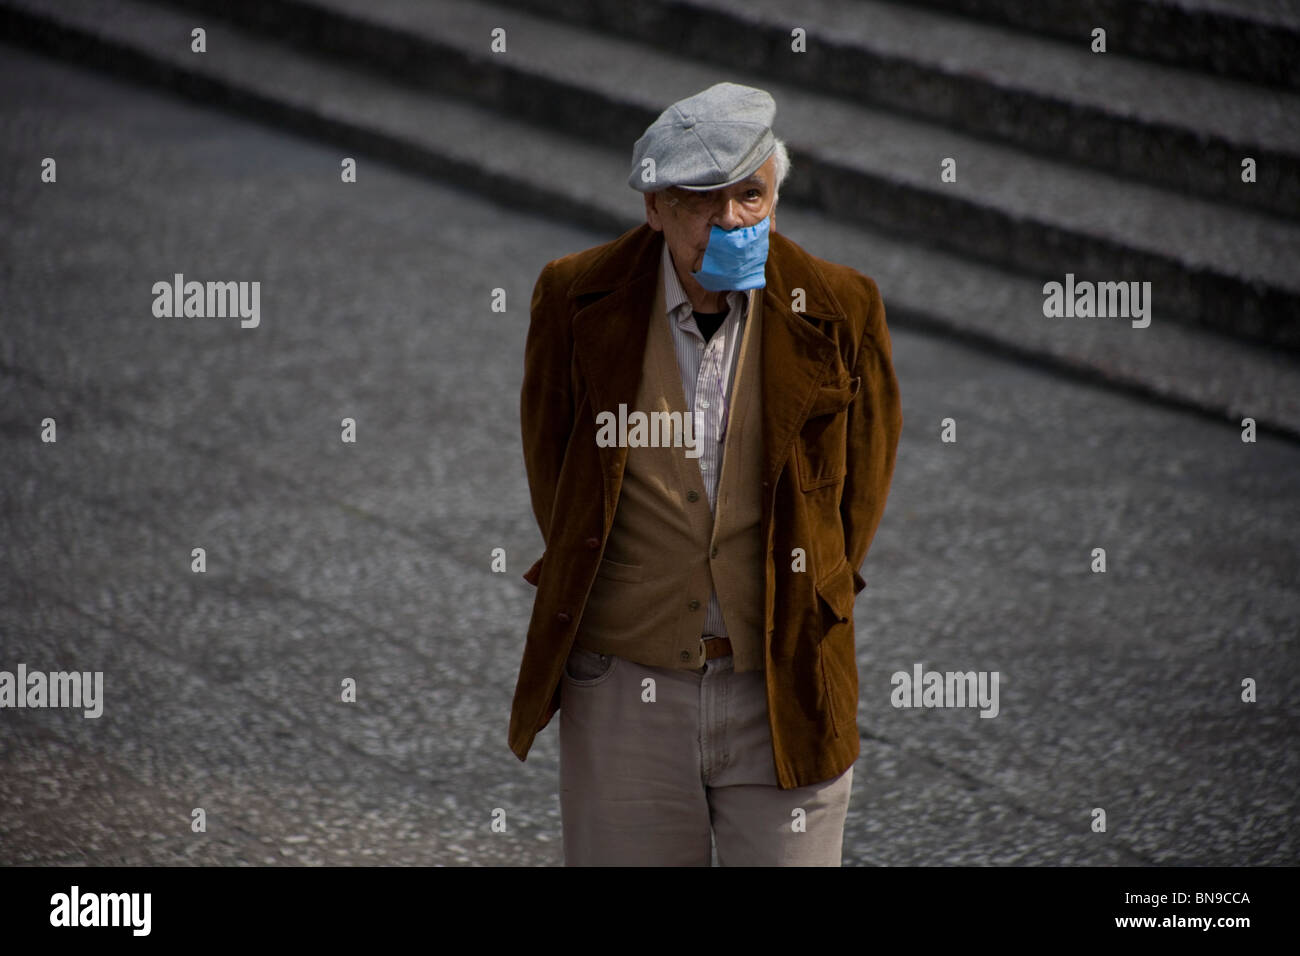 An elderly man wears a surgical mask as a precaution against pollution in Mexico City, November 26, 2009. - Stock Image